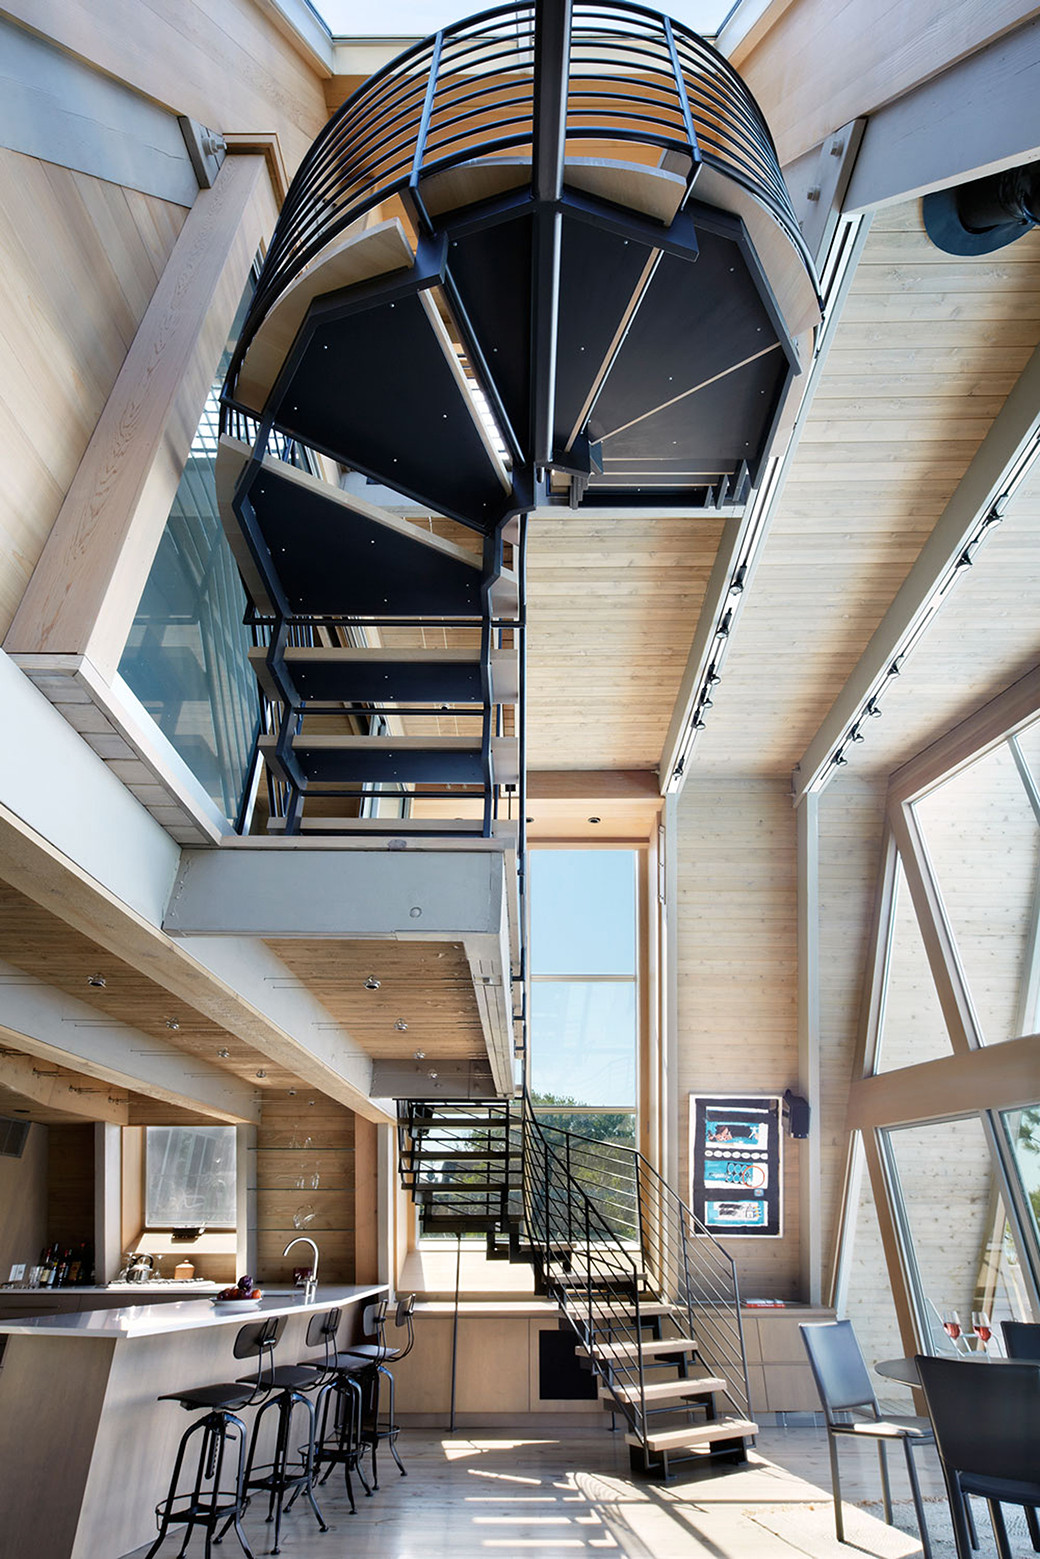 Gallery Of A Frame ReThink Bromley Caldari Architects 2